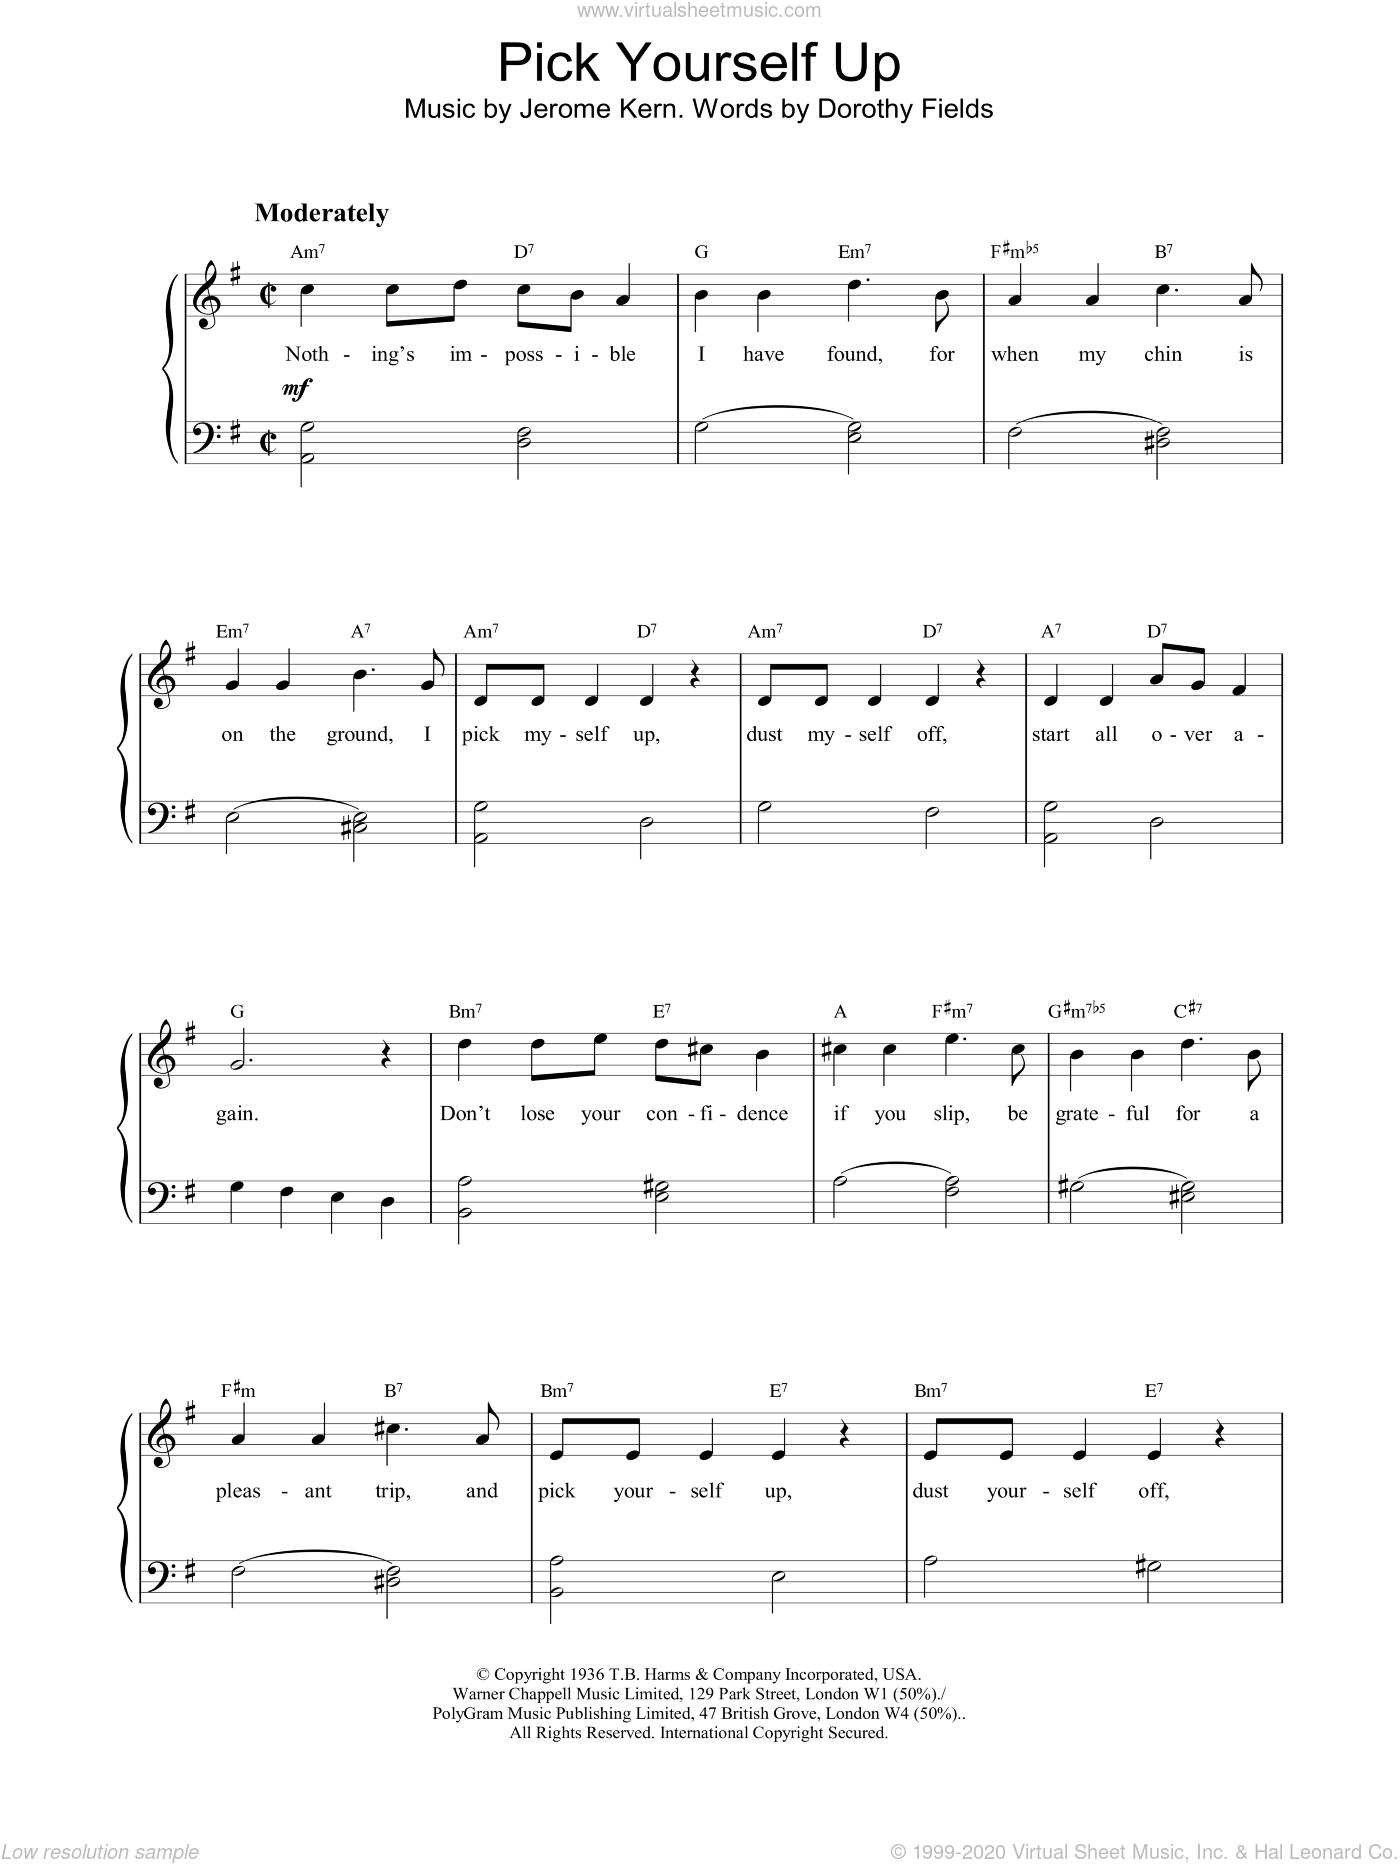 Pick Yourself Up sheet music for piano solo by Jerome Kern and Dorothy Fields, intermediate skill level